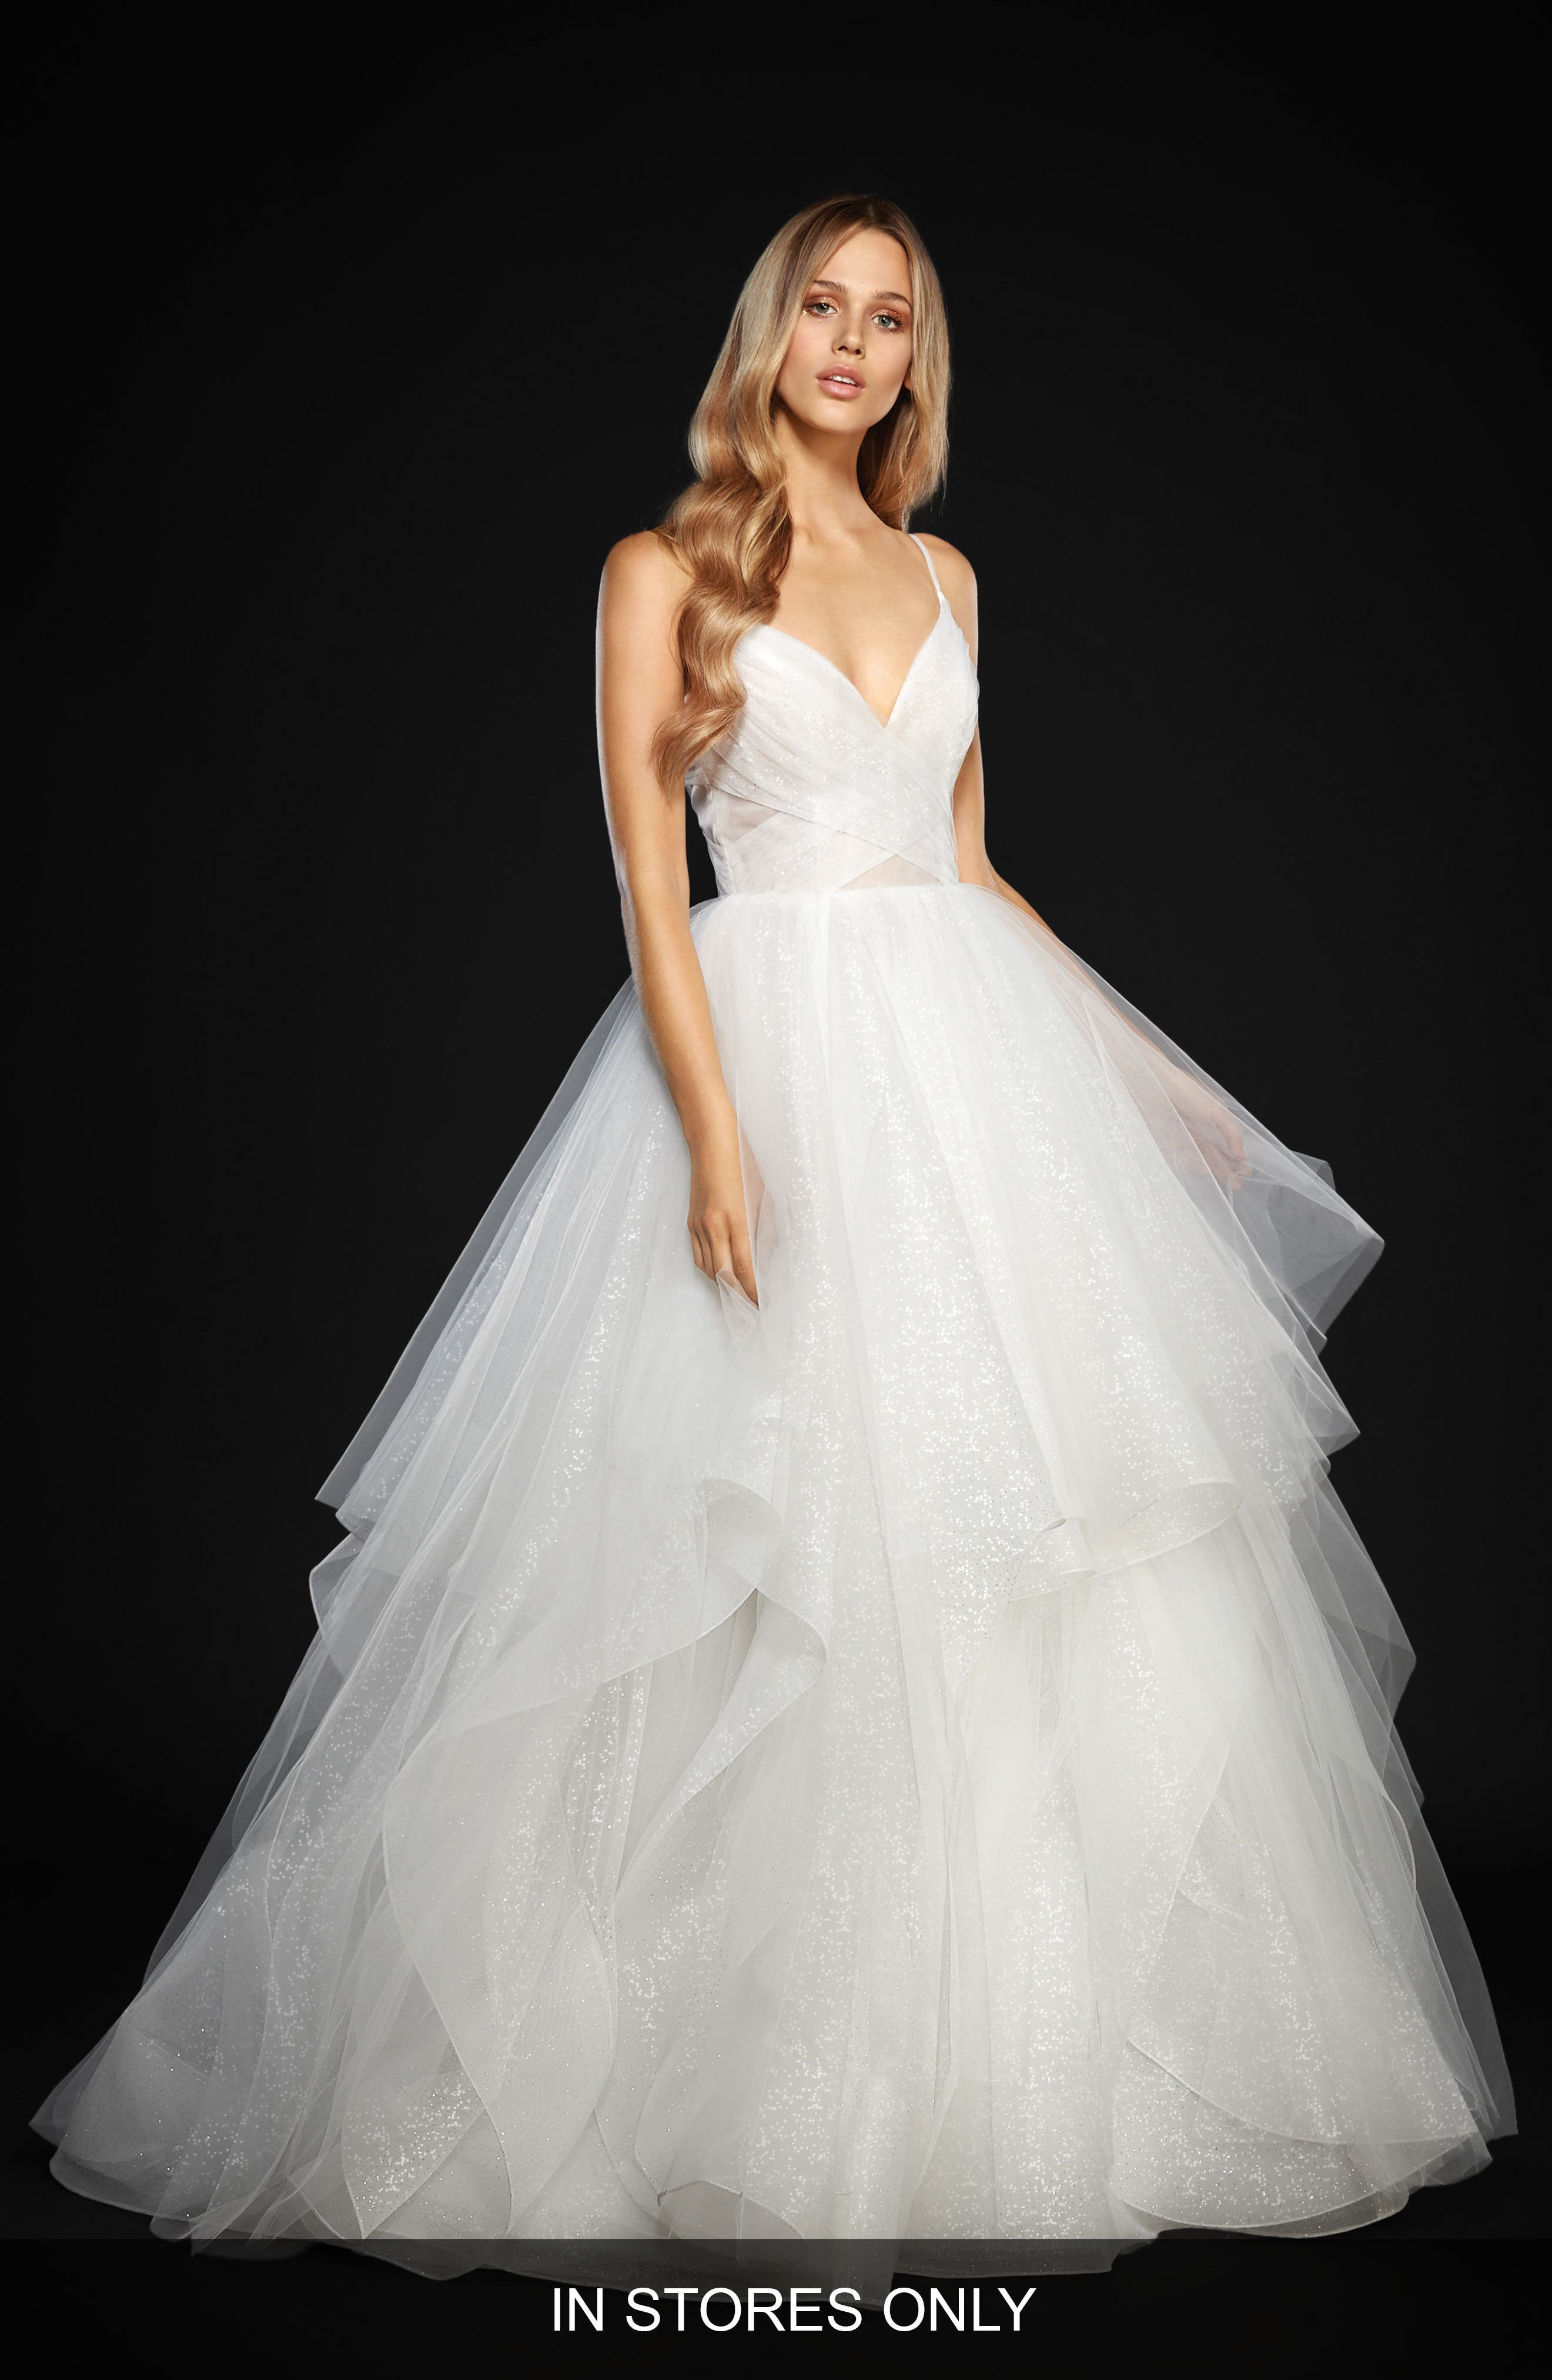 Hayley Paige Chandon Stardust Tulle Ballgown (In Stores Only)